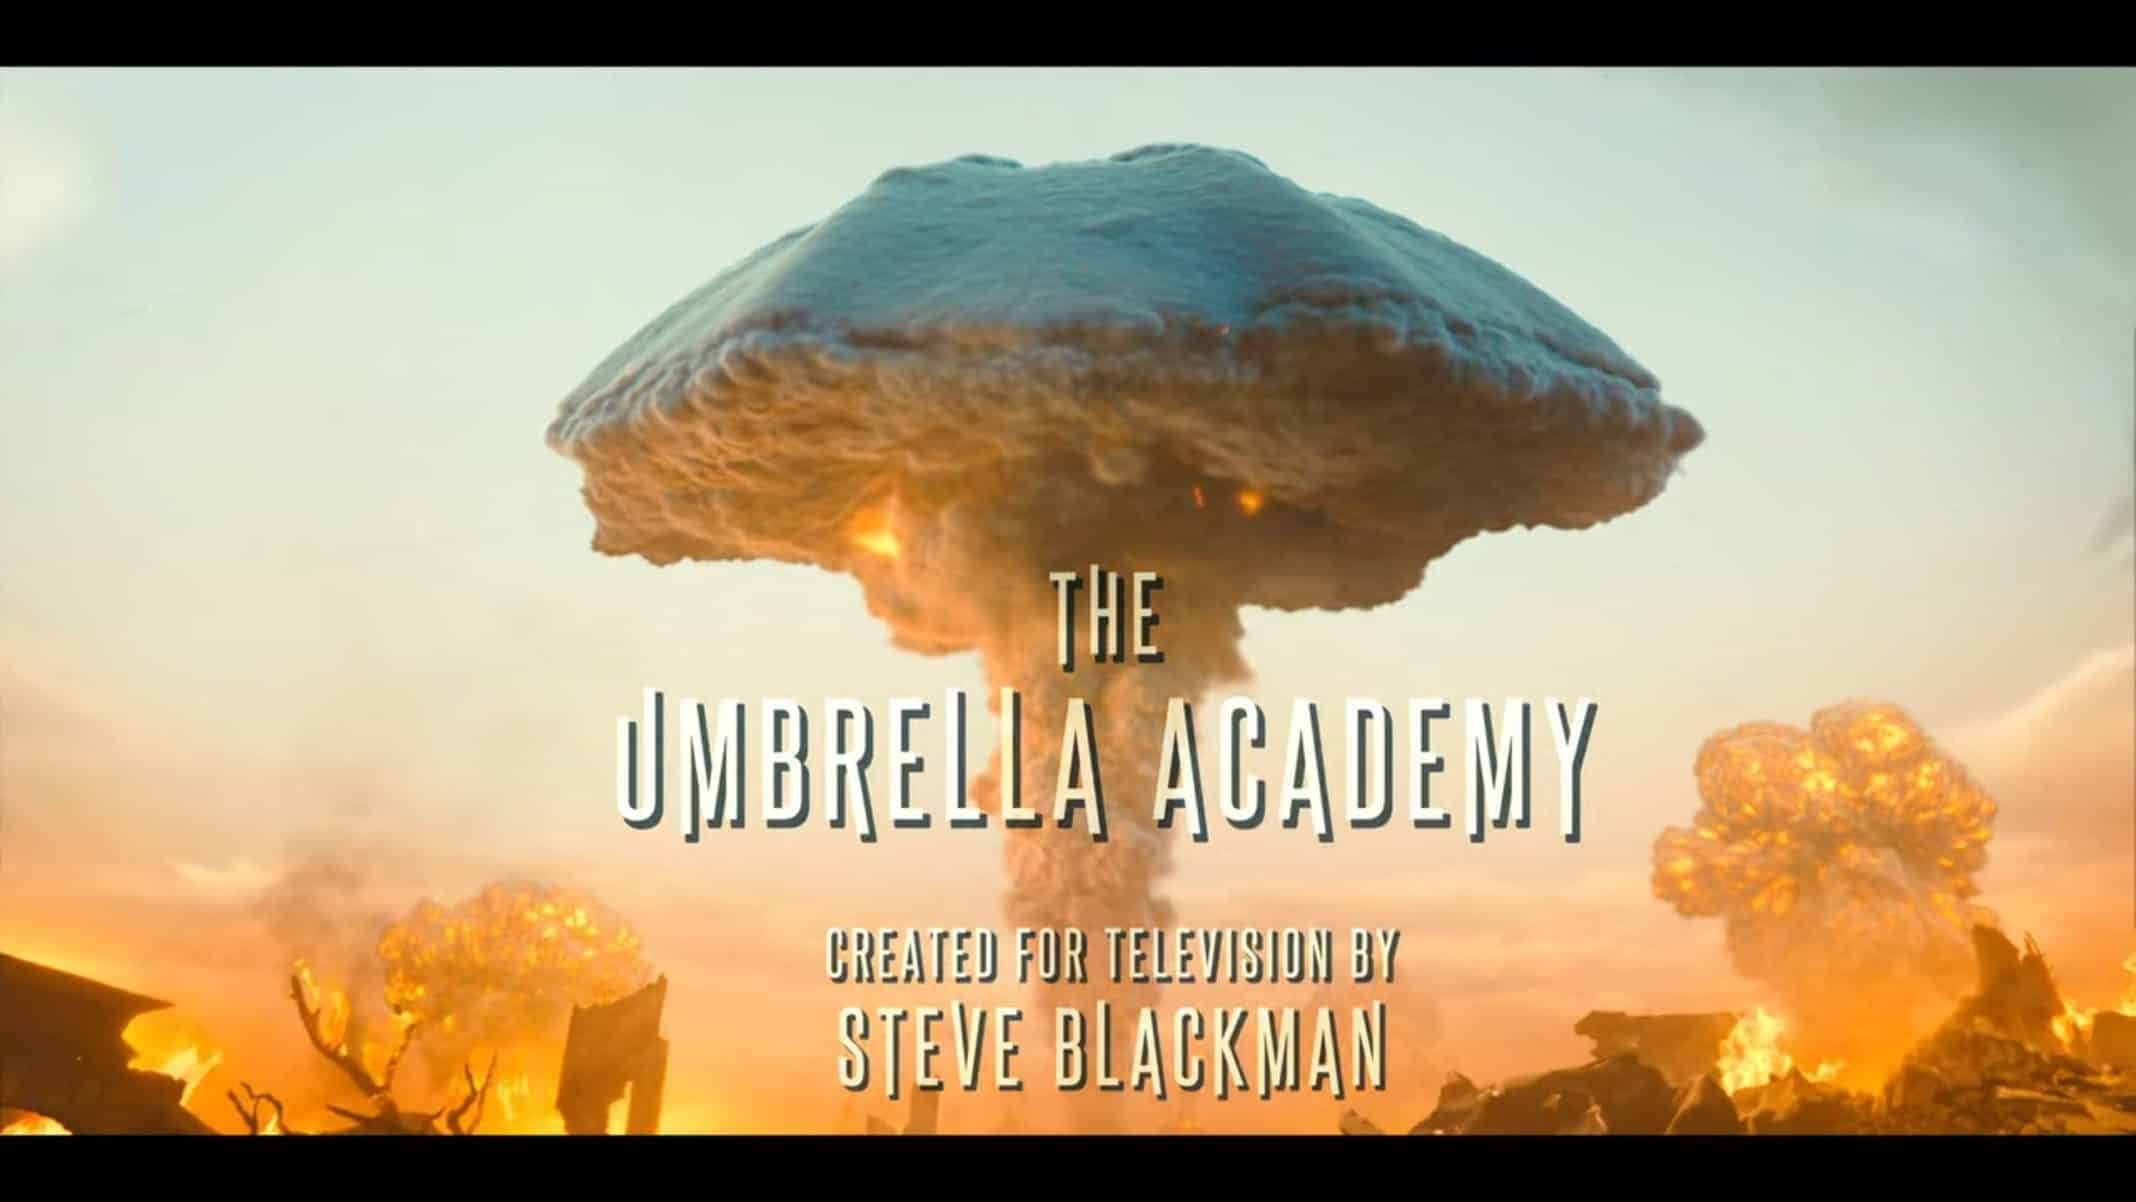 Title Card Episode 1 - The Umbrella Academy Season 2 Episode 1 to 3